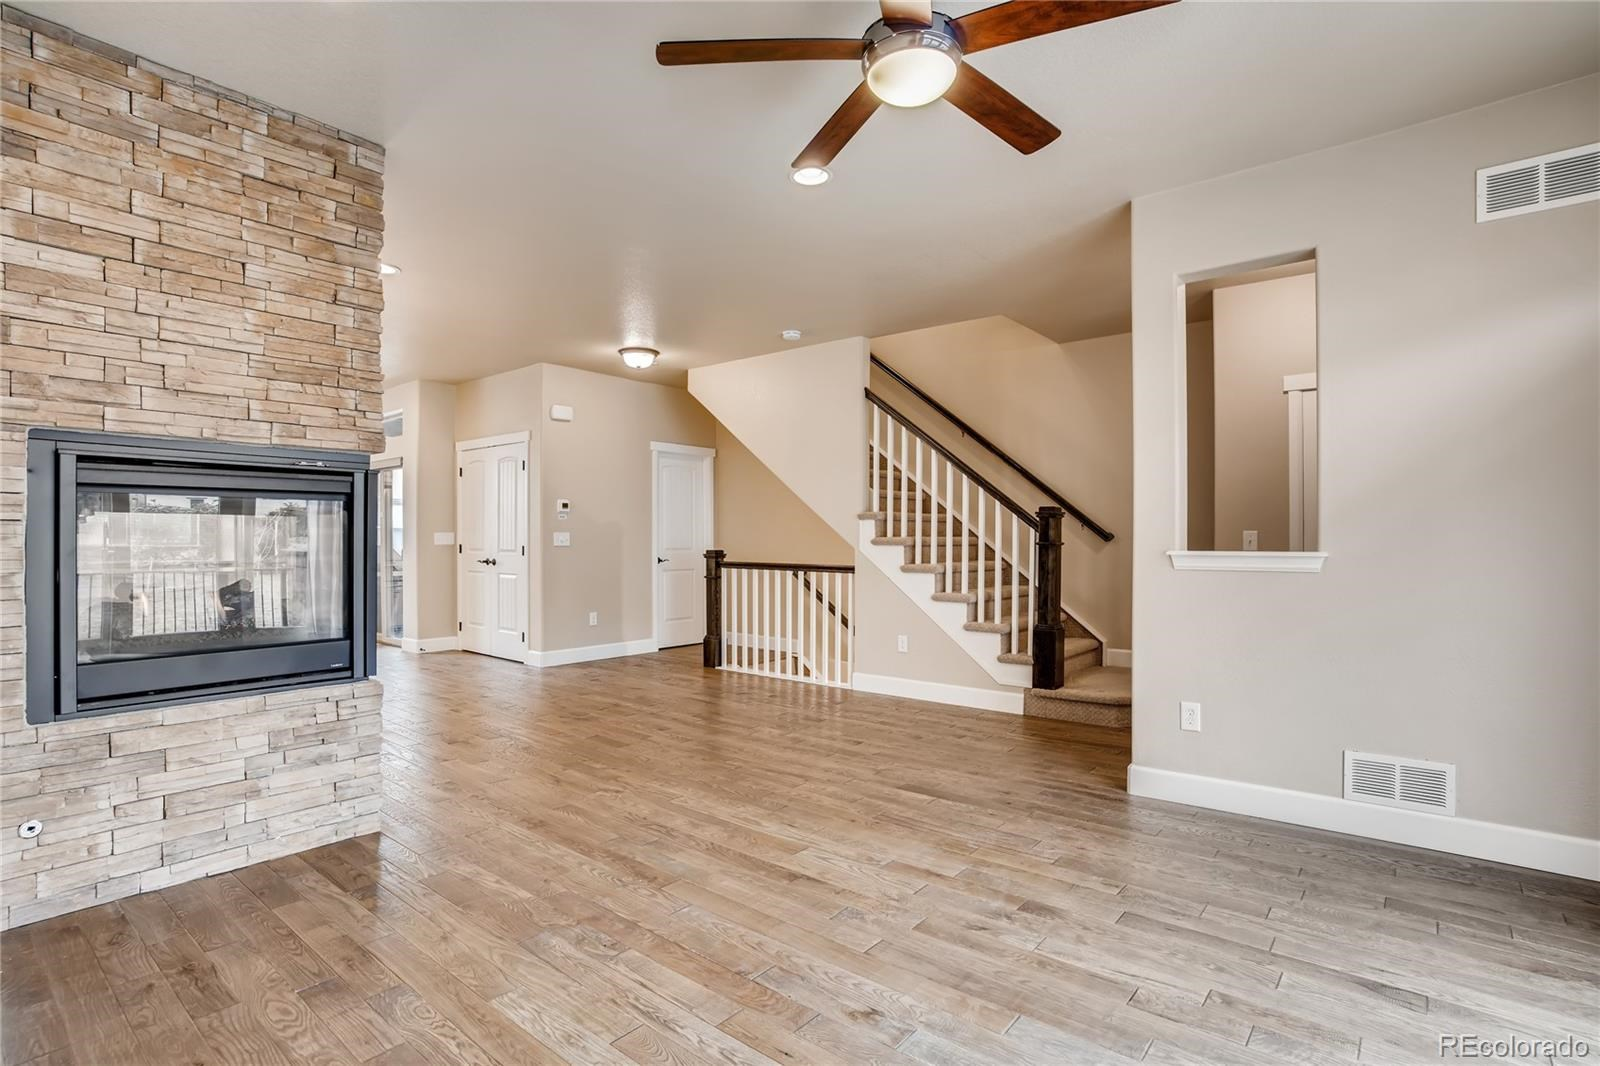 MLS# 7366960 - 7 - 15556 W Washburn Circle, Lakewood, CO 80228